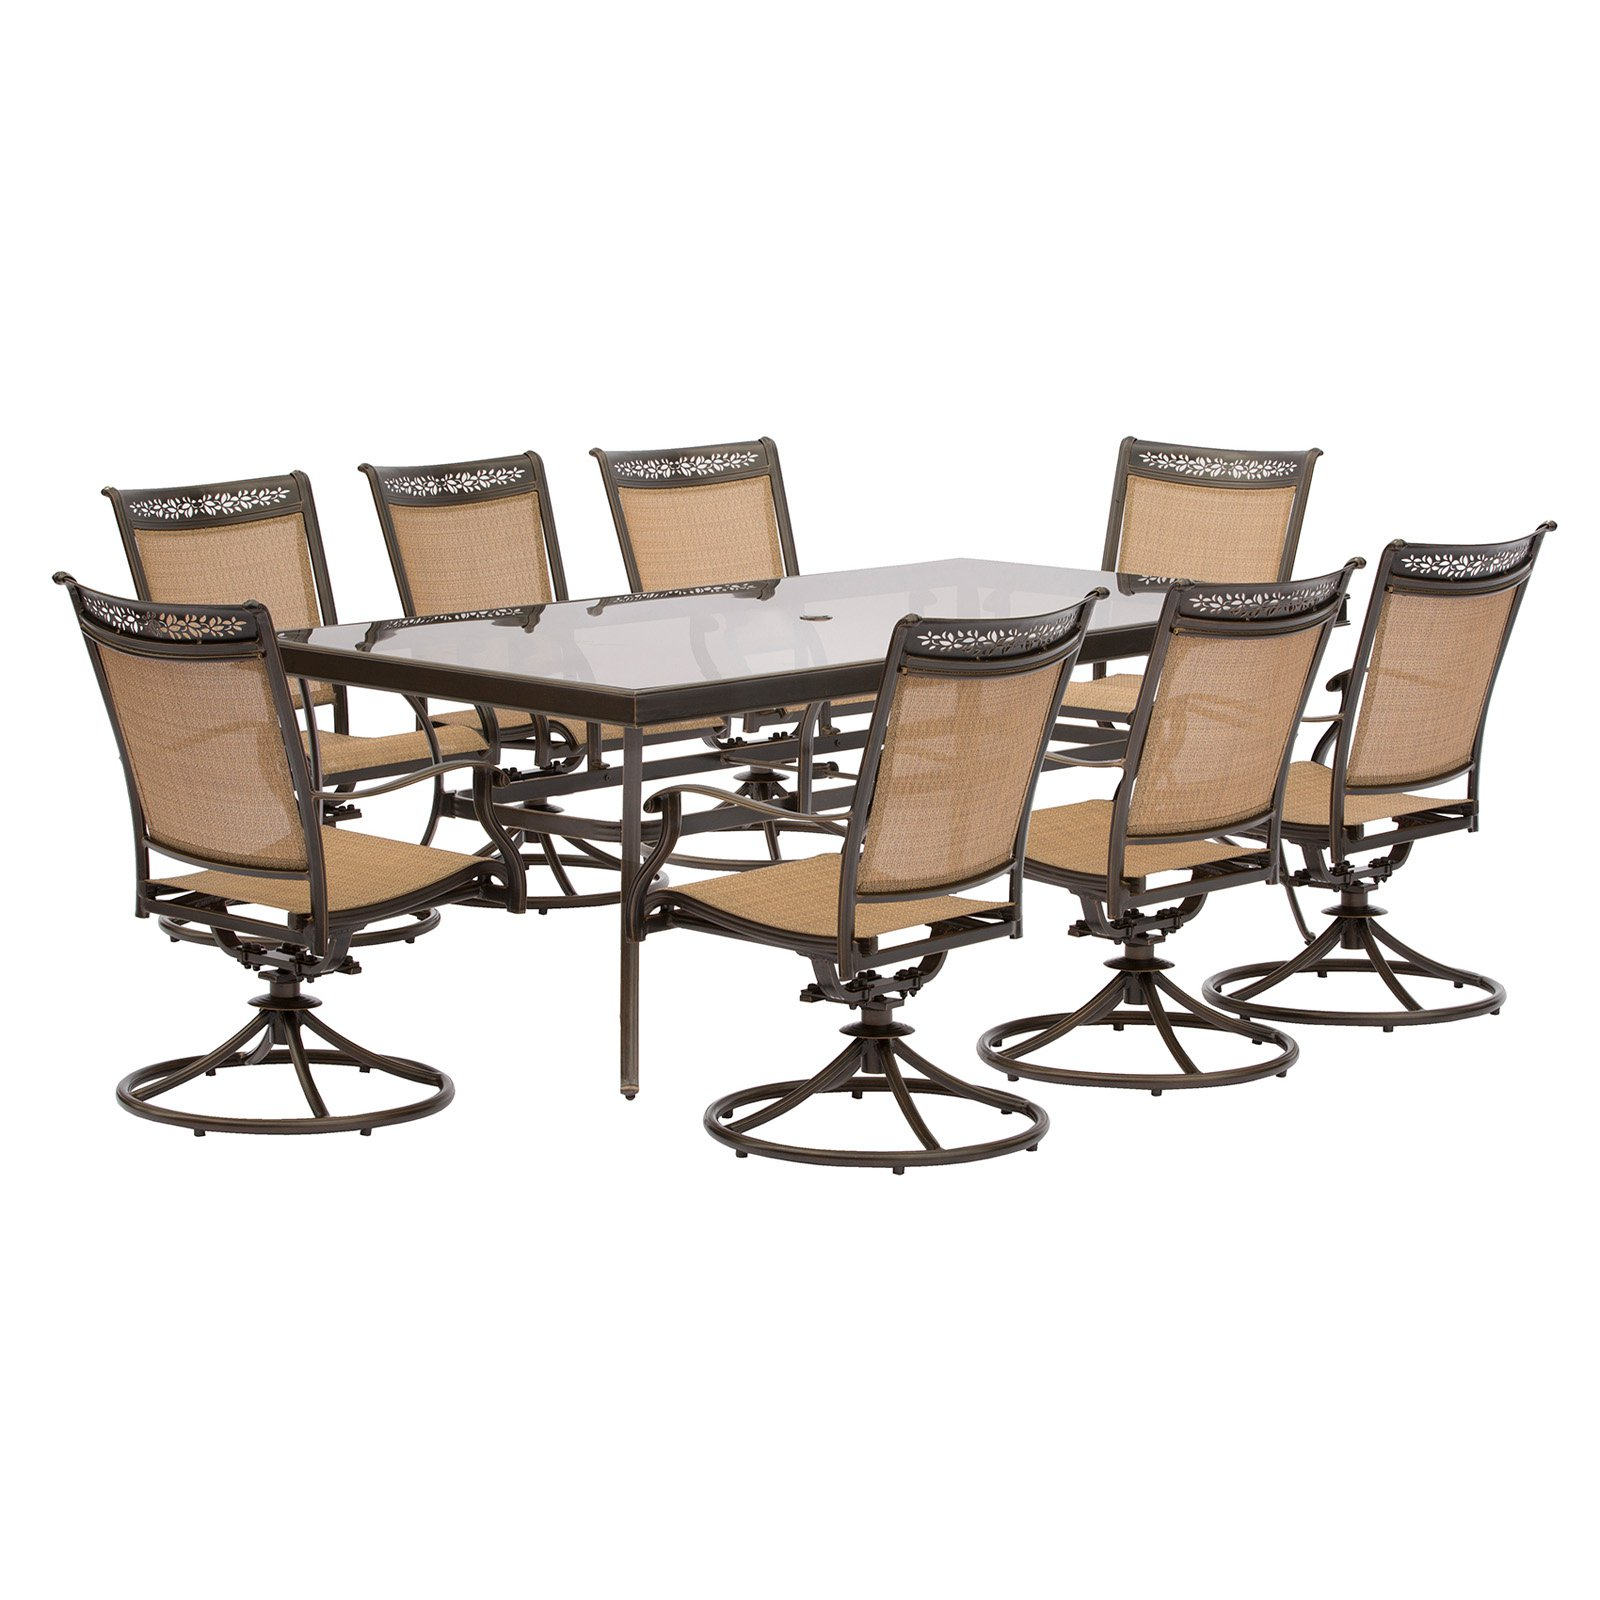 Hanover Fontana 9-Piece Outdoor Dining Set with Swivel Rockers and Glass-Top Table